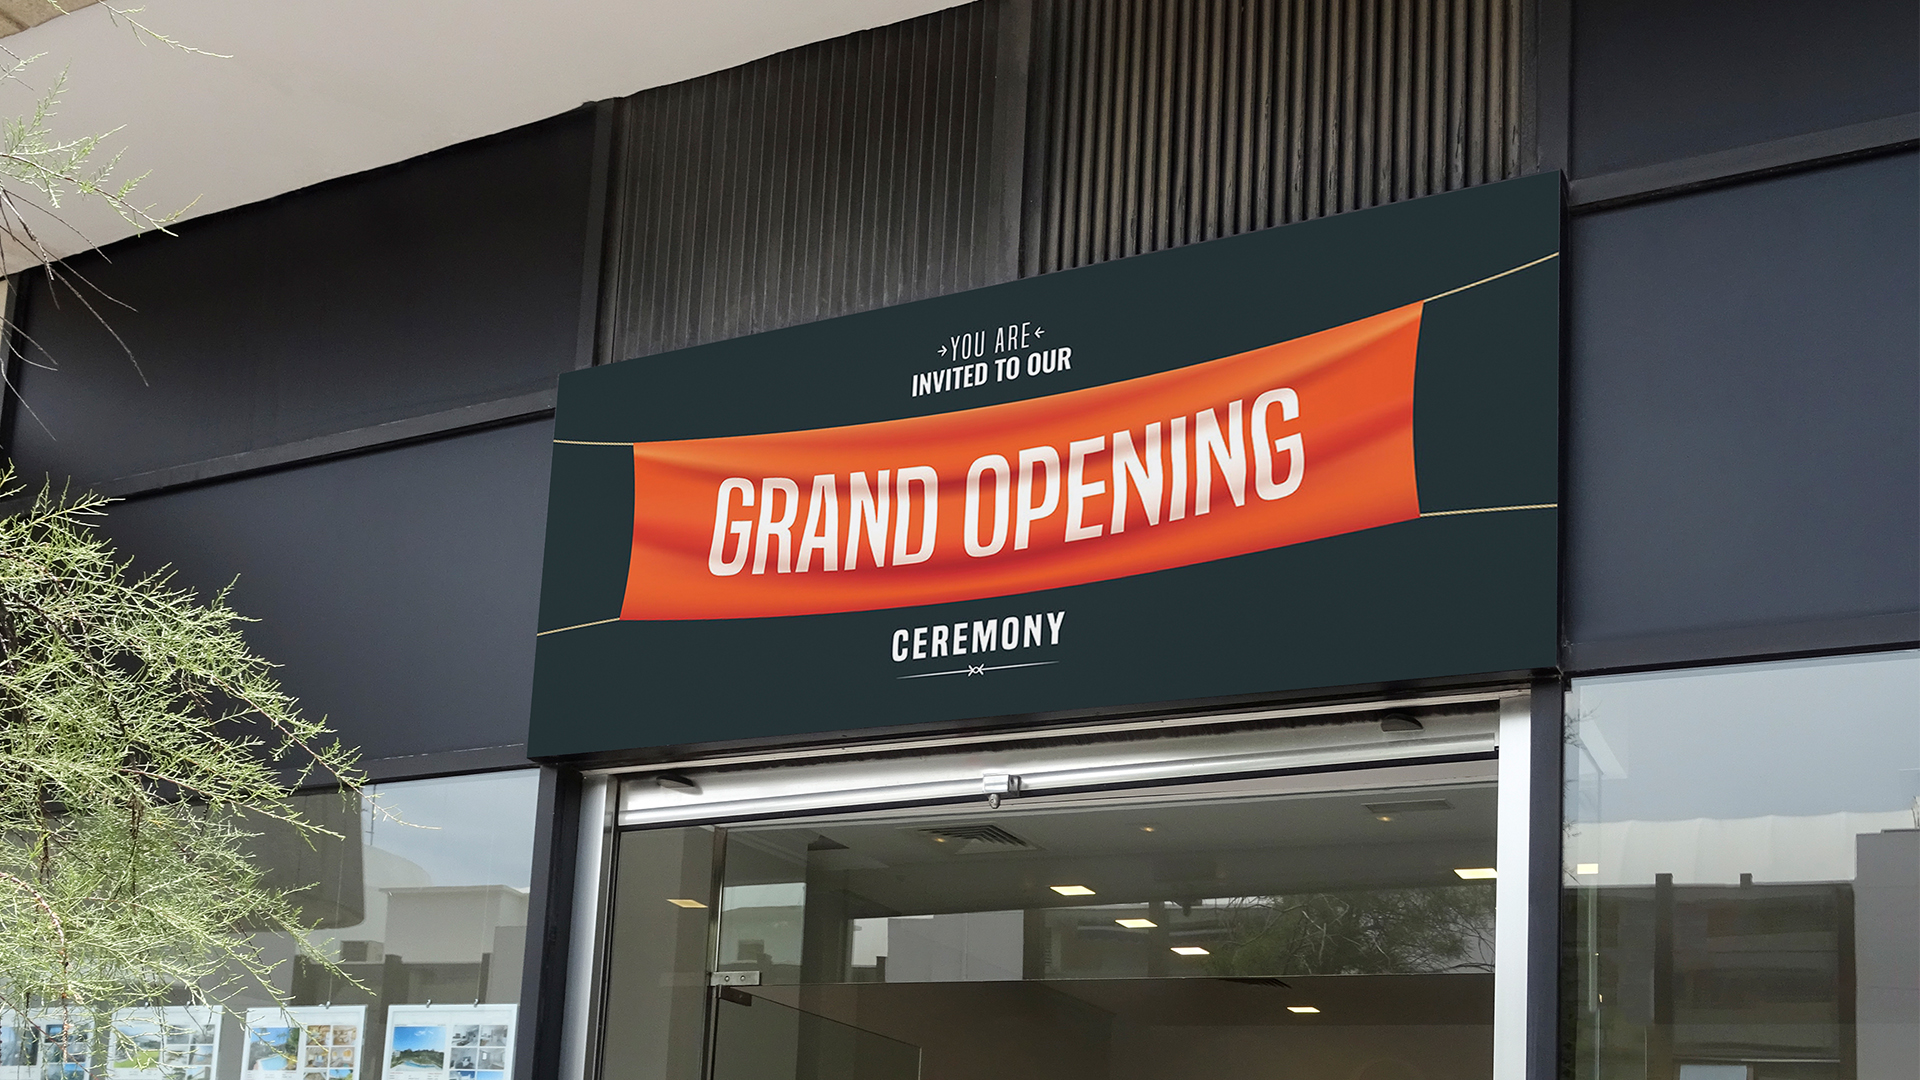 Grand opening banner for businesses